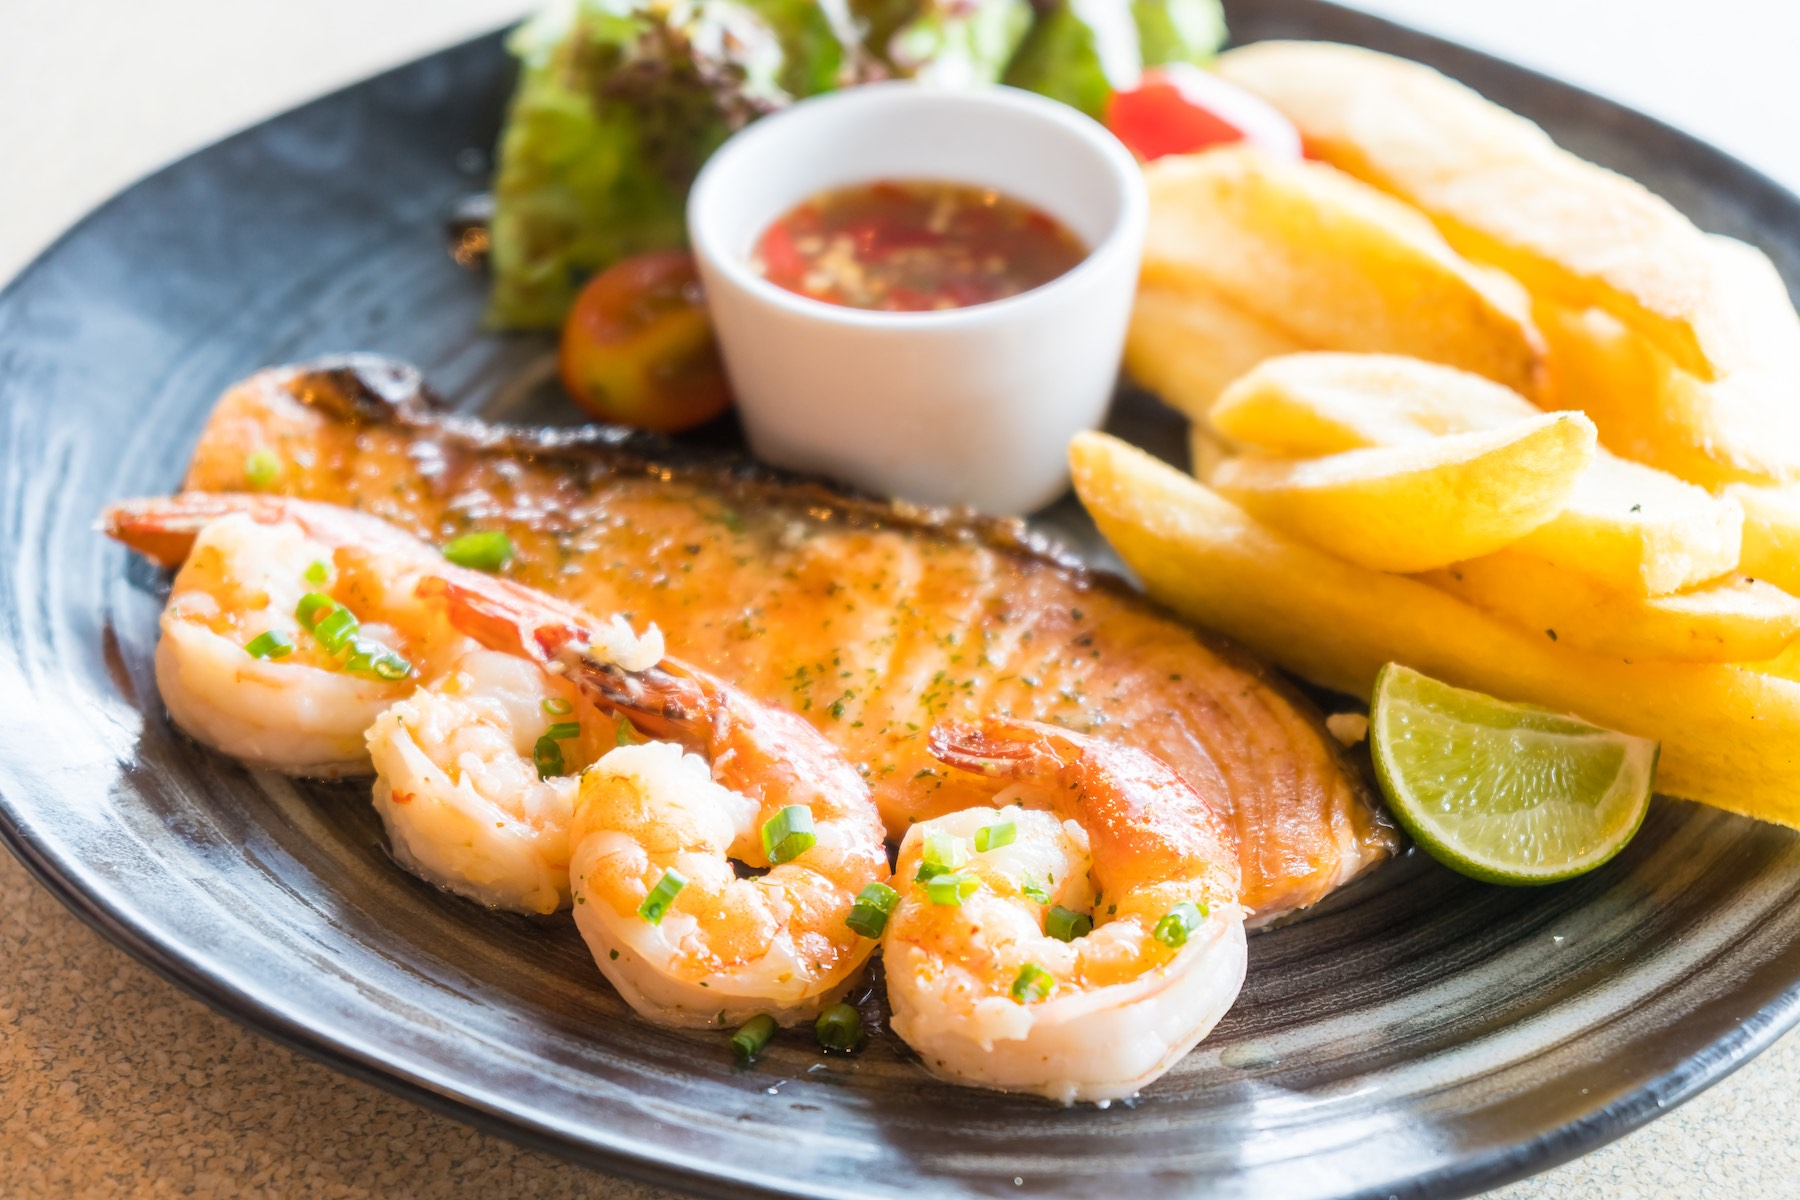 10 Healthy Seafood Dishes That Will Help You Lose Weight The Tasty Way